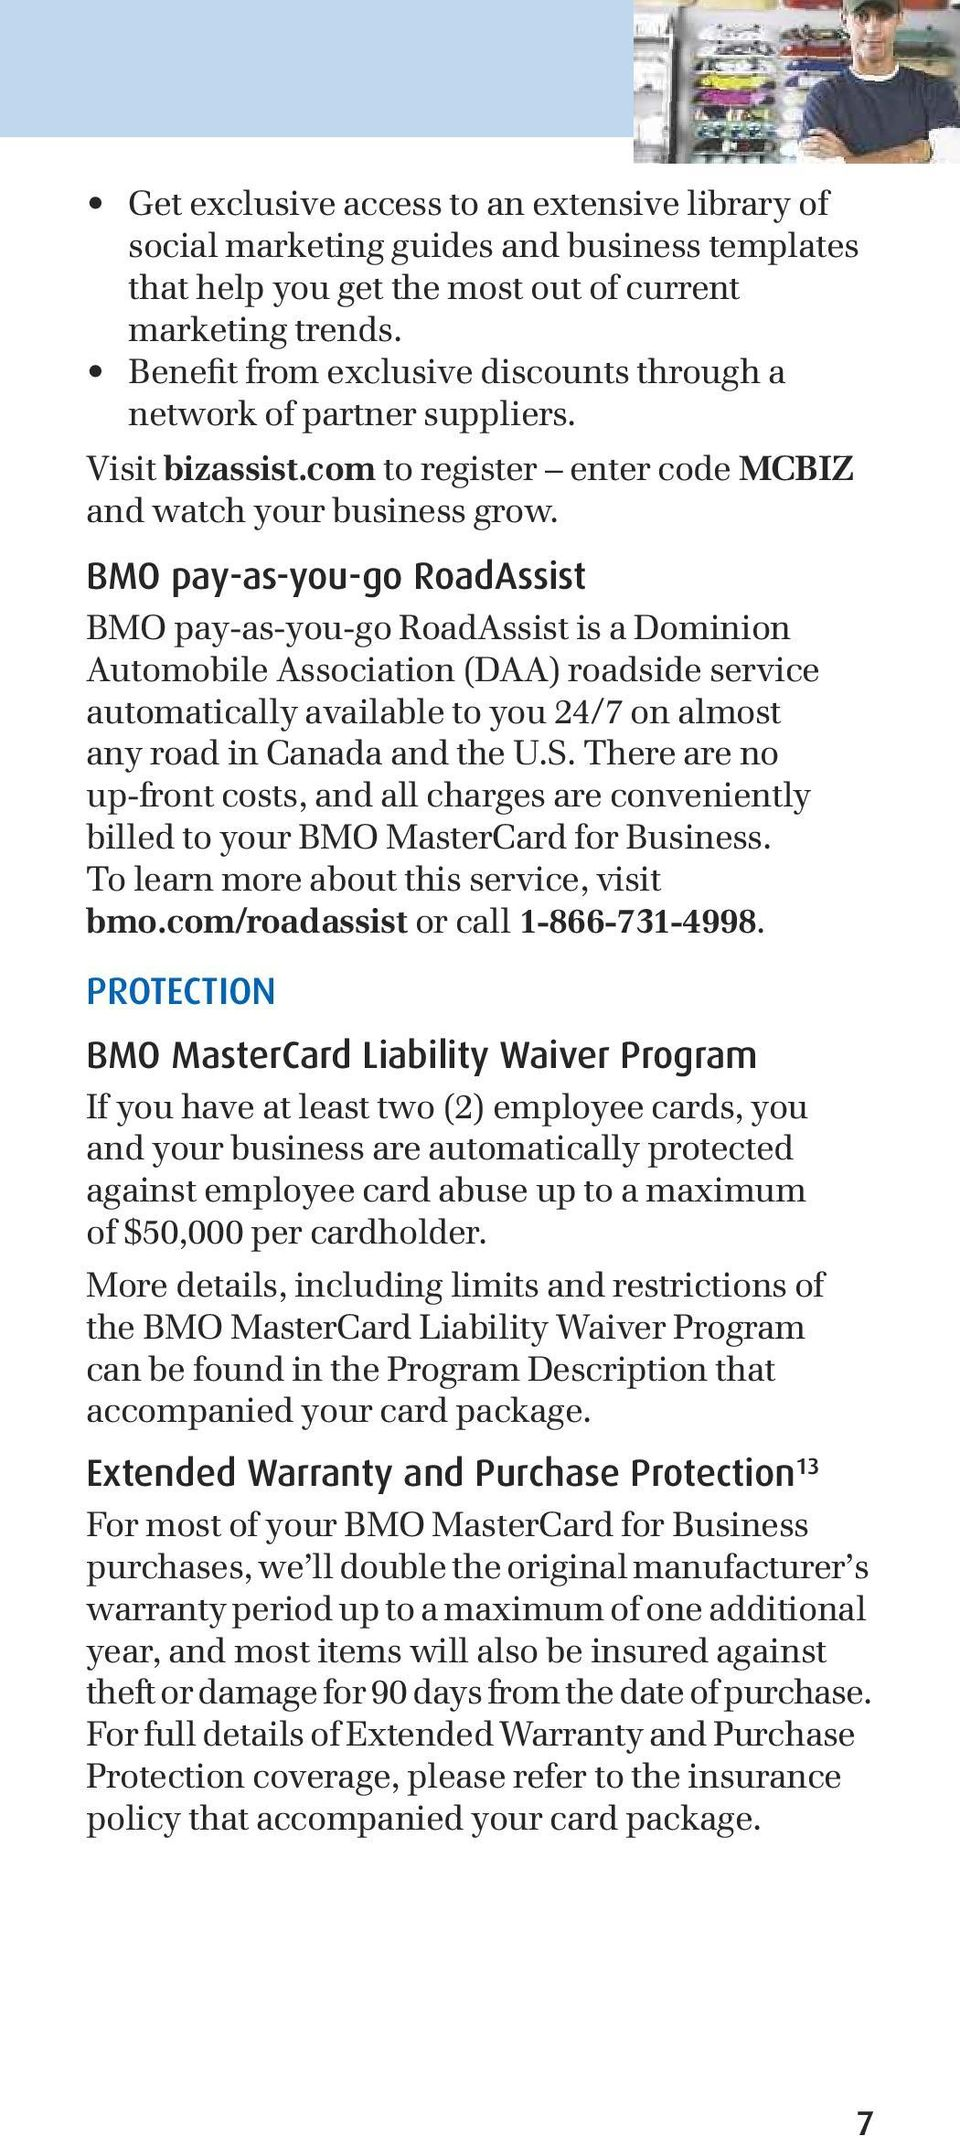 BMO pay-as-you-go RoadAssist BMO pay-as-you-go RoadAssist is a Dominion Automobile Association (DAA) roadside service automatically available to you 24/7 on almost any road in Canada and the U.S.